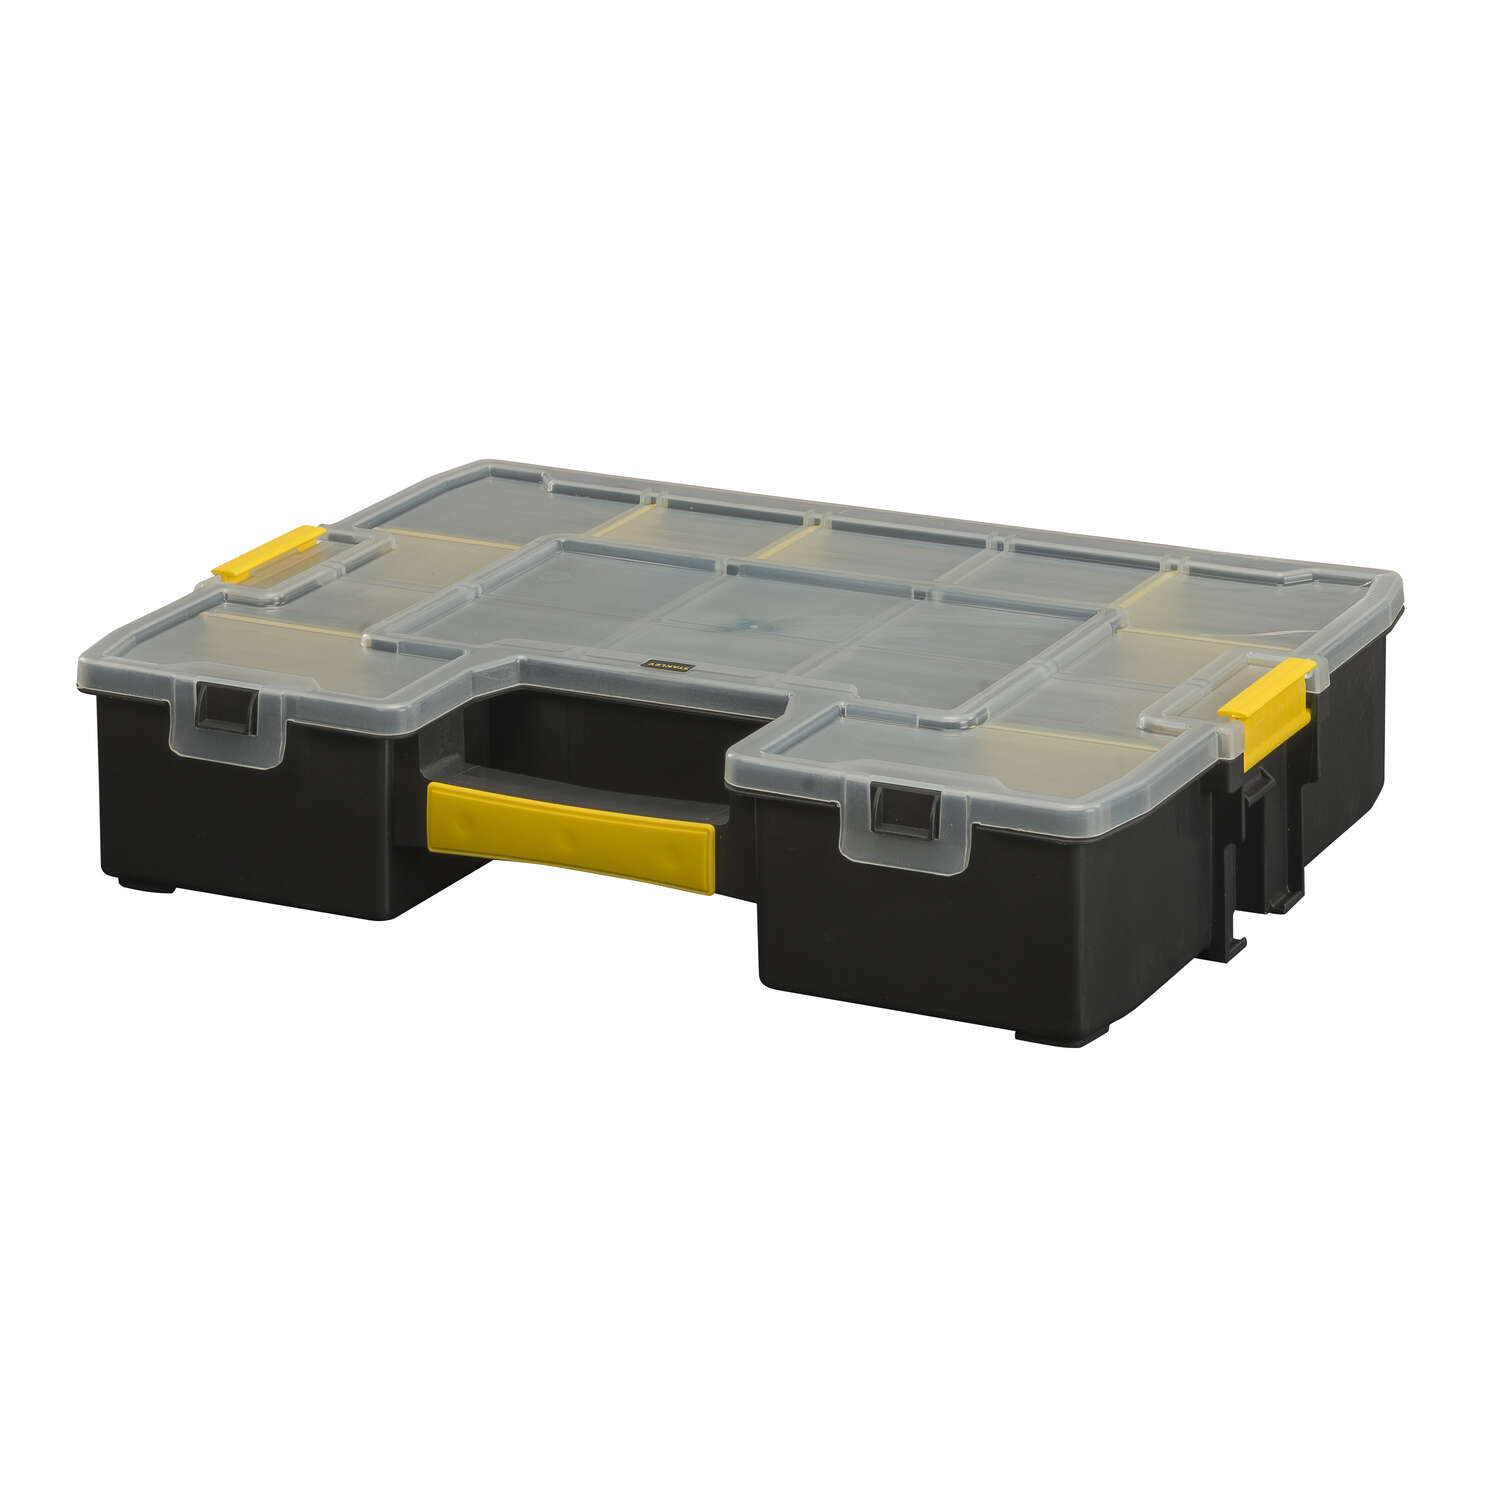 Stanley  Sort Master  17 in. Plastic  Organizer  13 in. W x 3 in. H Black/Yellow